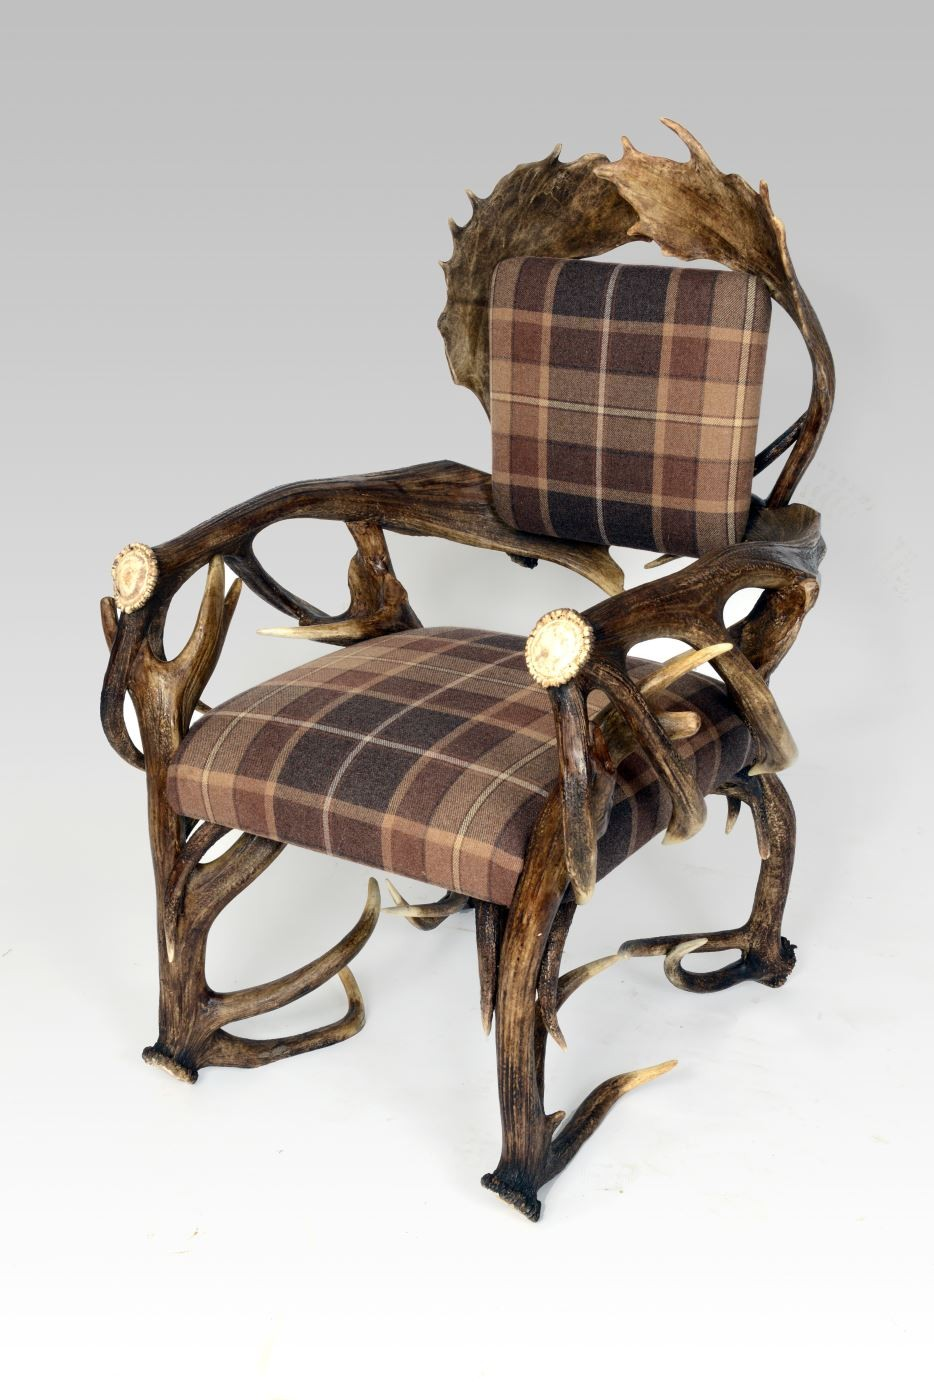 Meubles Fraser Furniture Fraser Chair Fallow Deer Antlers